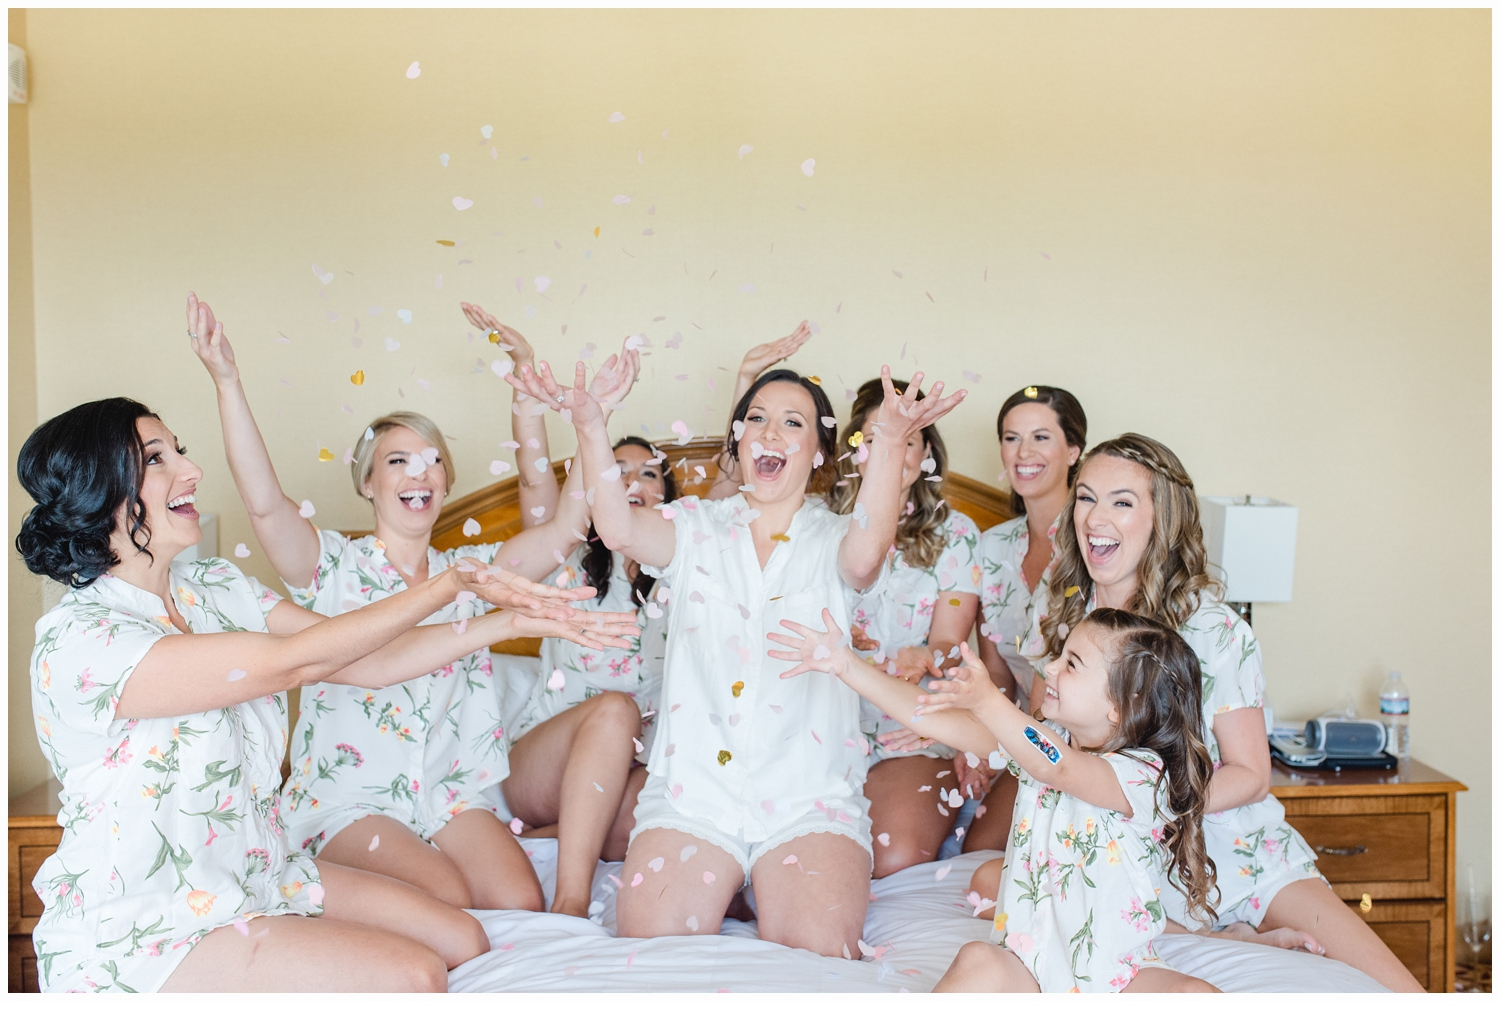 bride and bridesmaids throwing confetti on bed